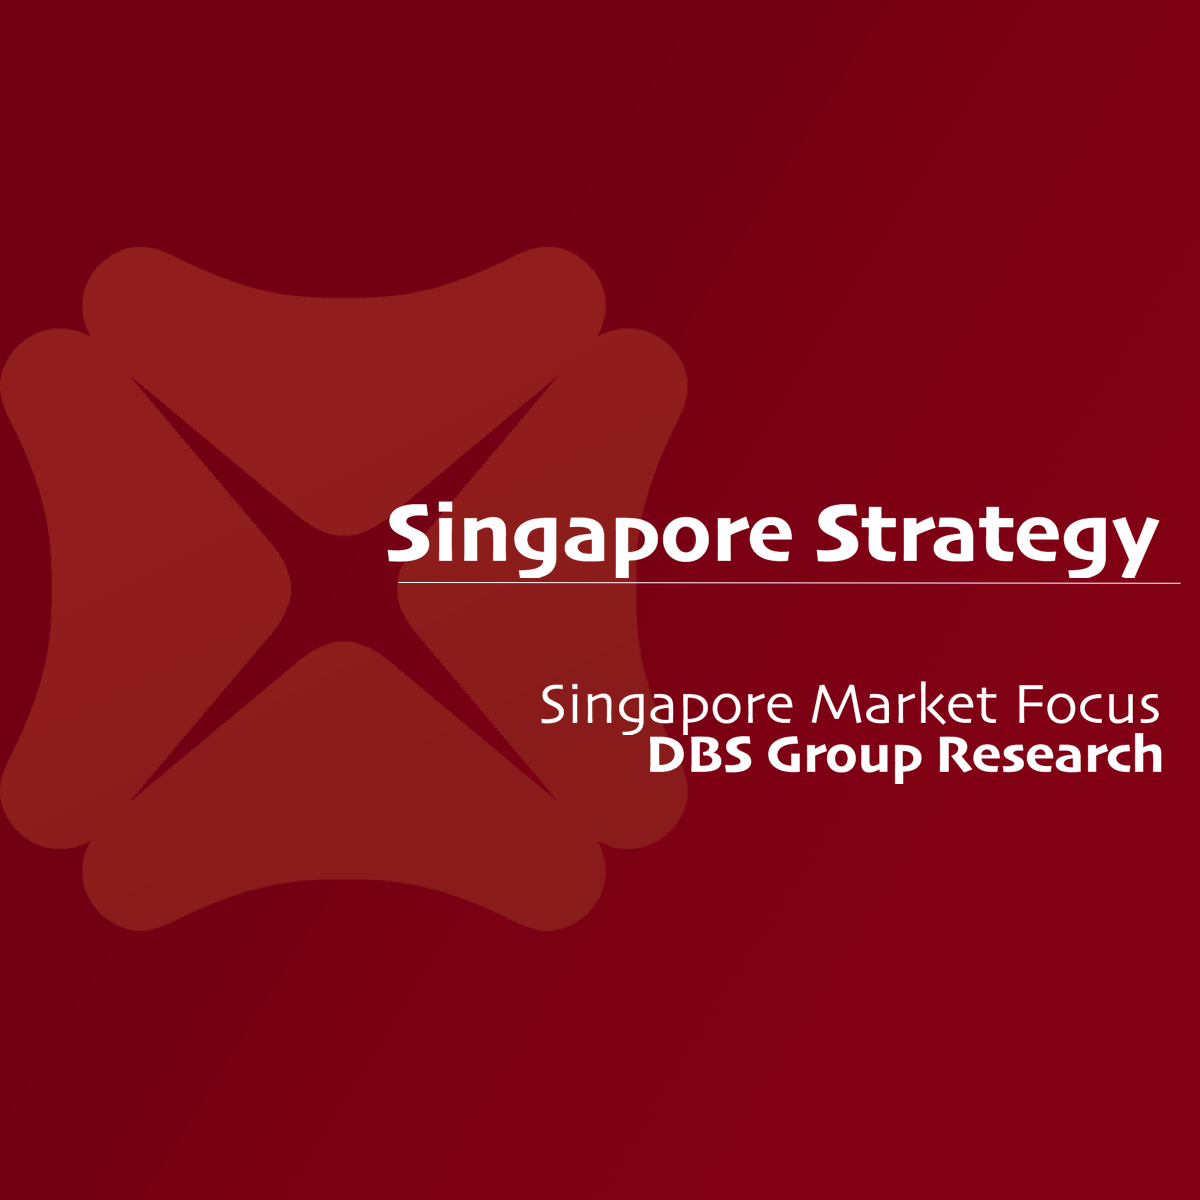 Singapore Market Focus - DBS Vickers 2018-01-05: January Awakening